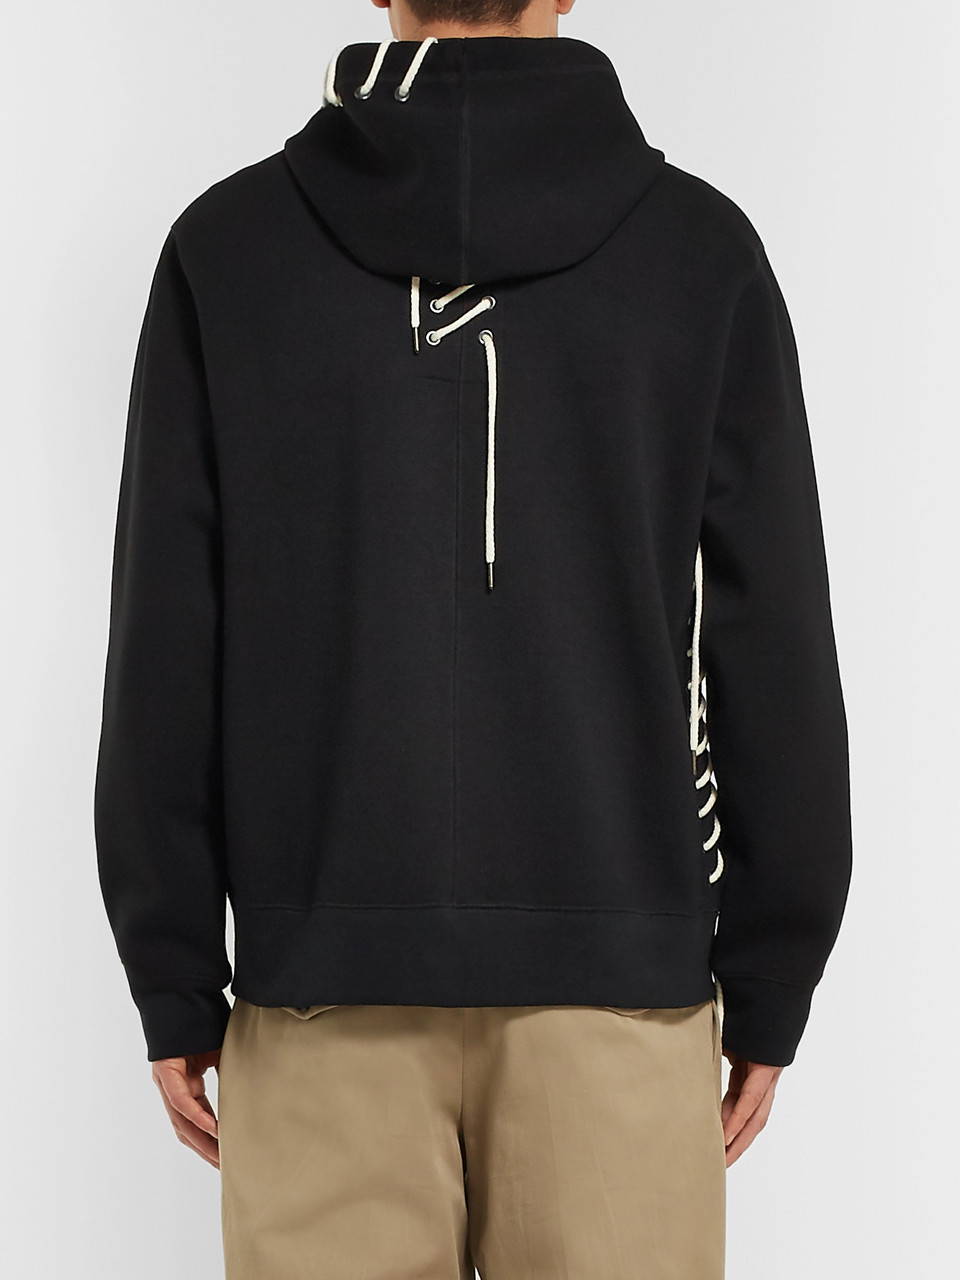 Craig Green Lace-Detailed Bonded-Jersey Hoodie